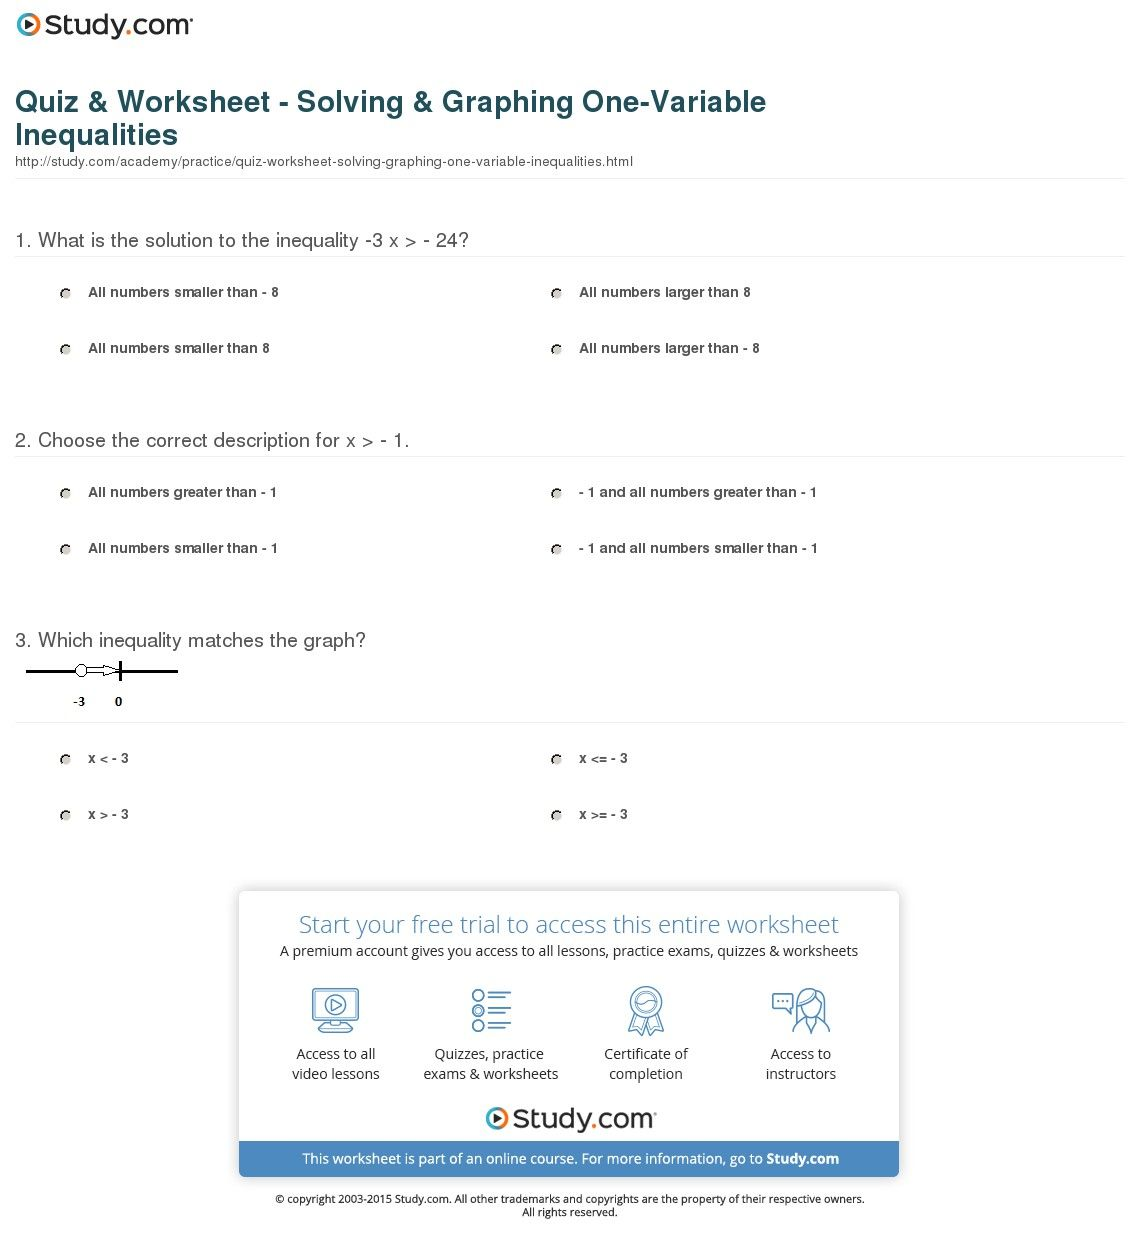 Quiz Worksheet Solving Graphing One Variable Inequalities